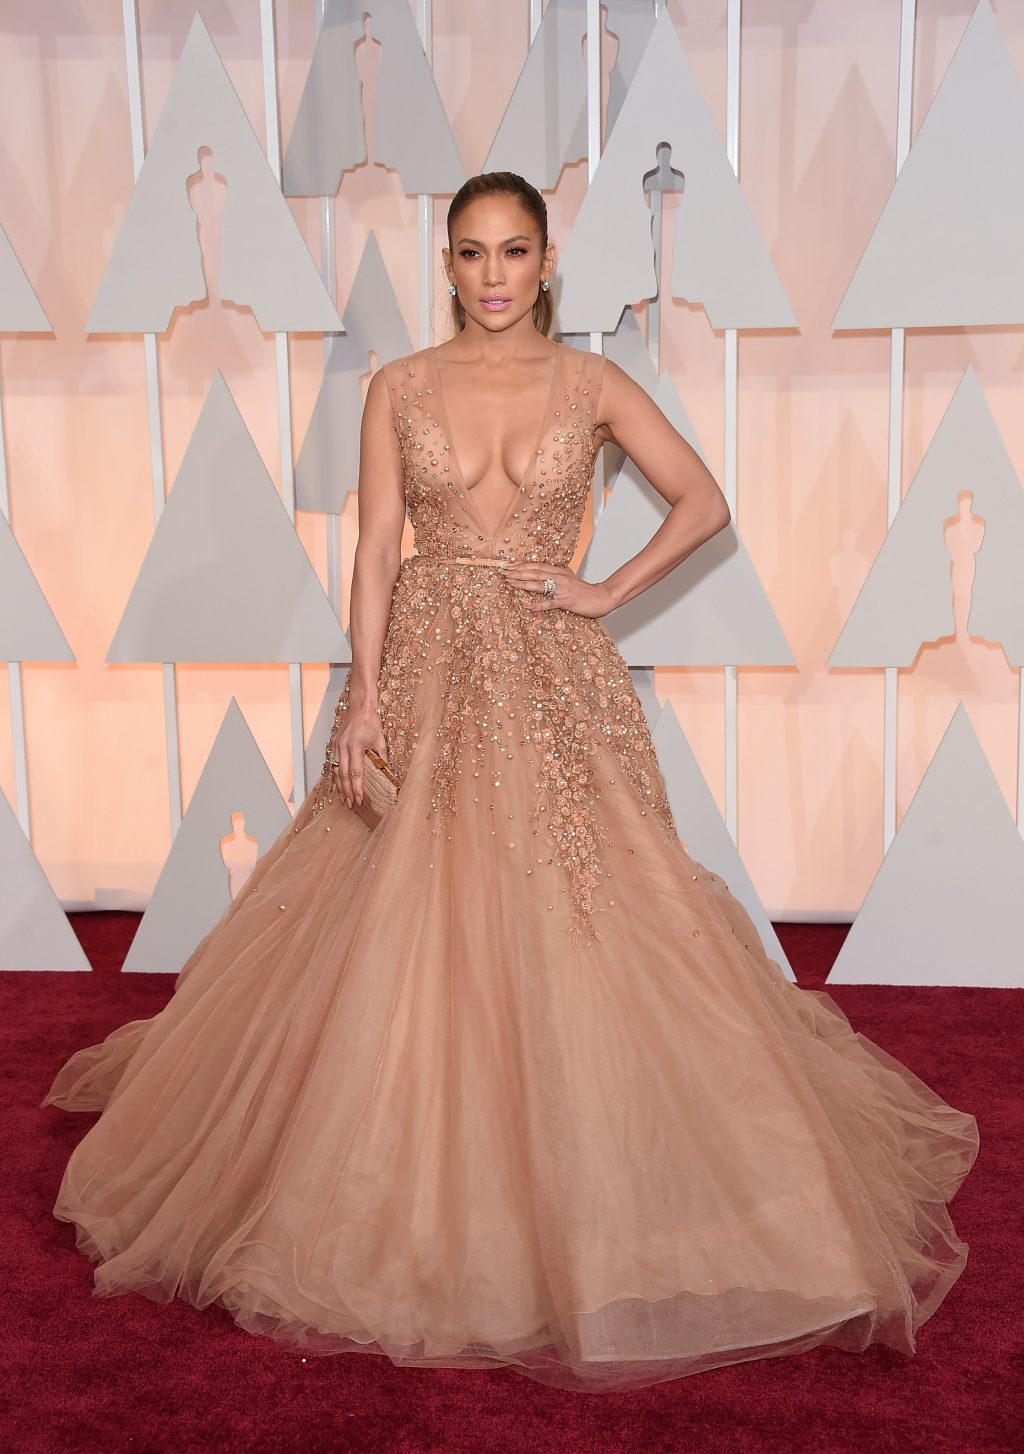 From JLo to JLaw: Meet the Most Iconic Oscar Dresses of All Time